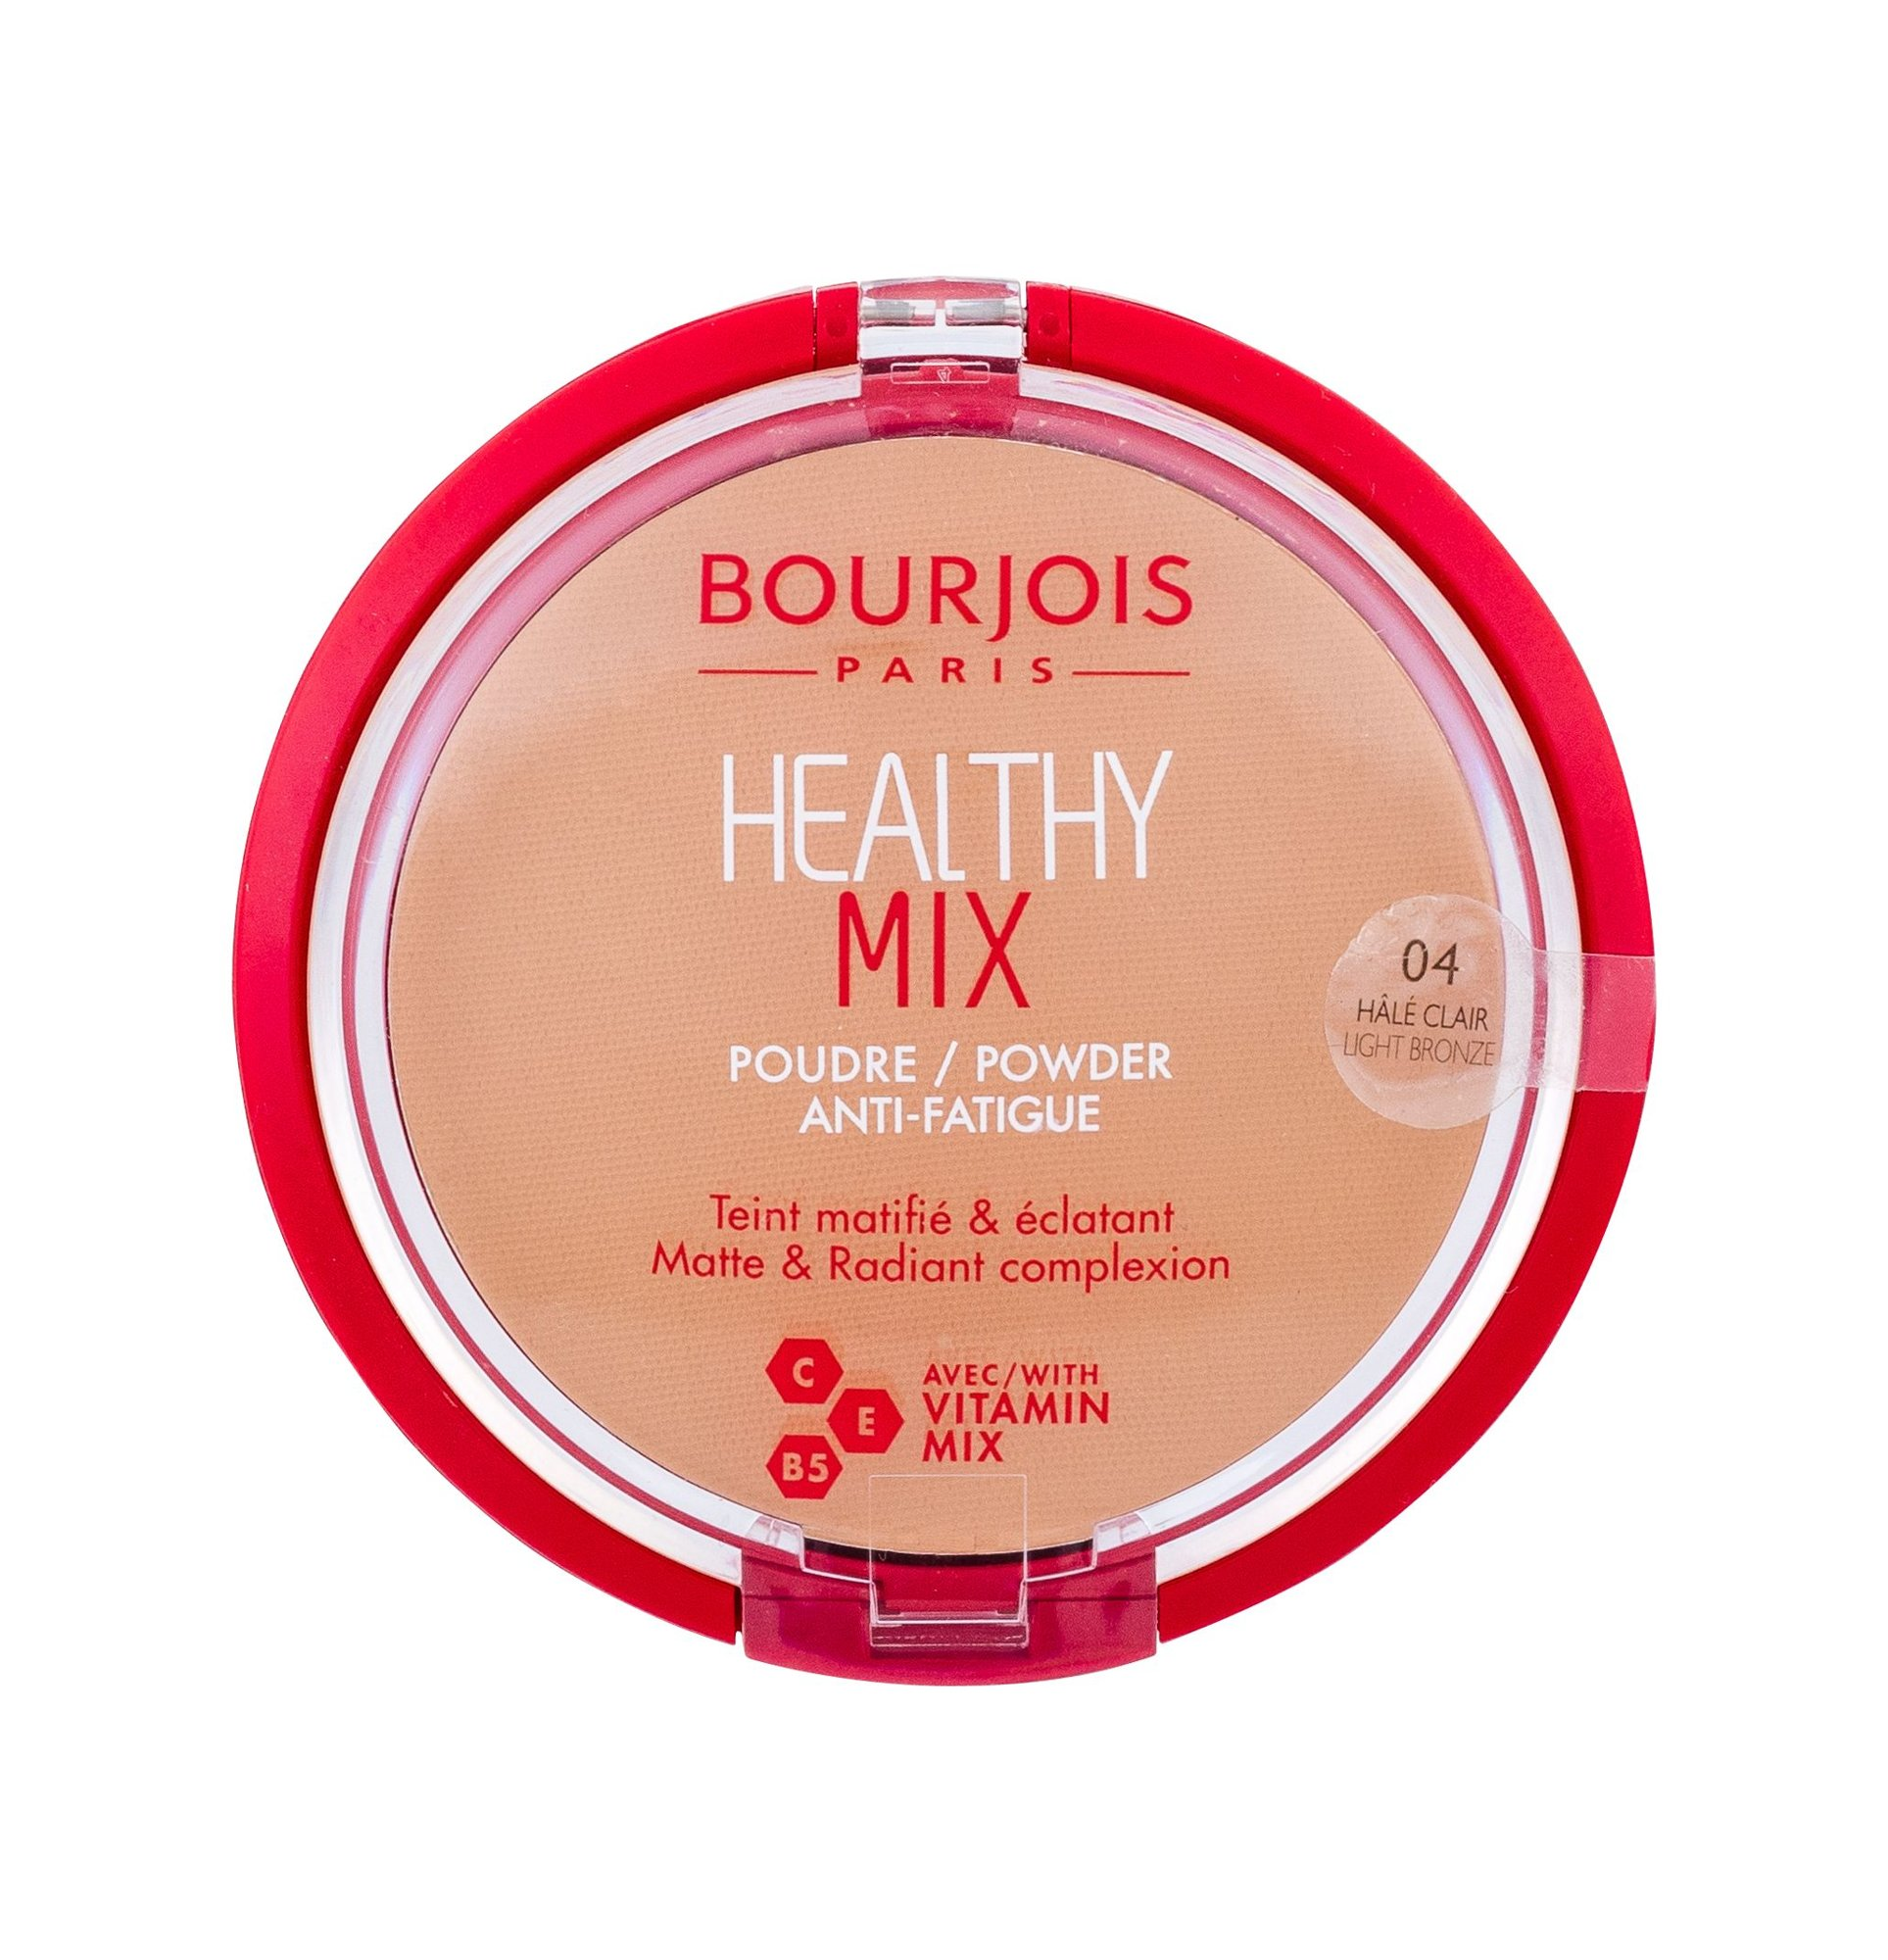 BOURJOIS Paris Healthy Mix Powder 11ml 04 Light Bronze